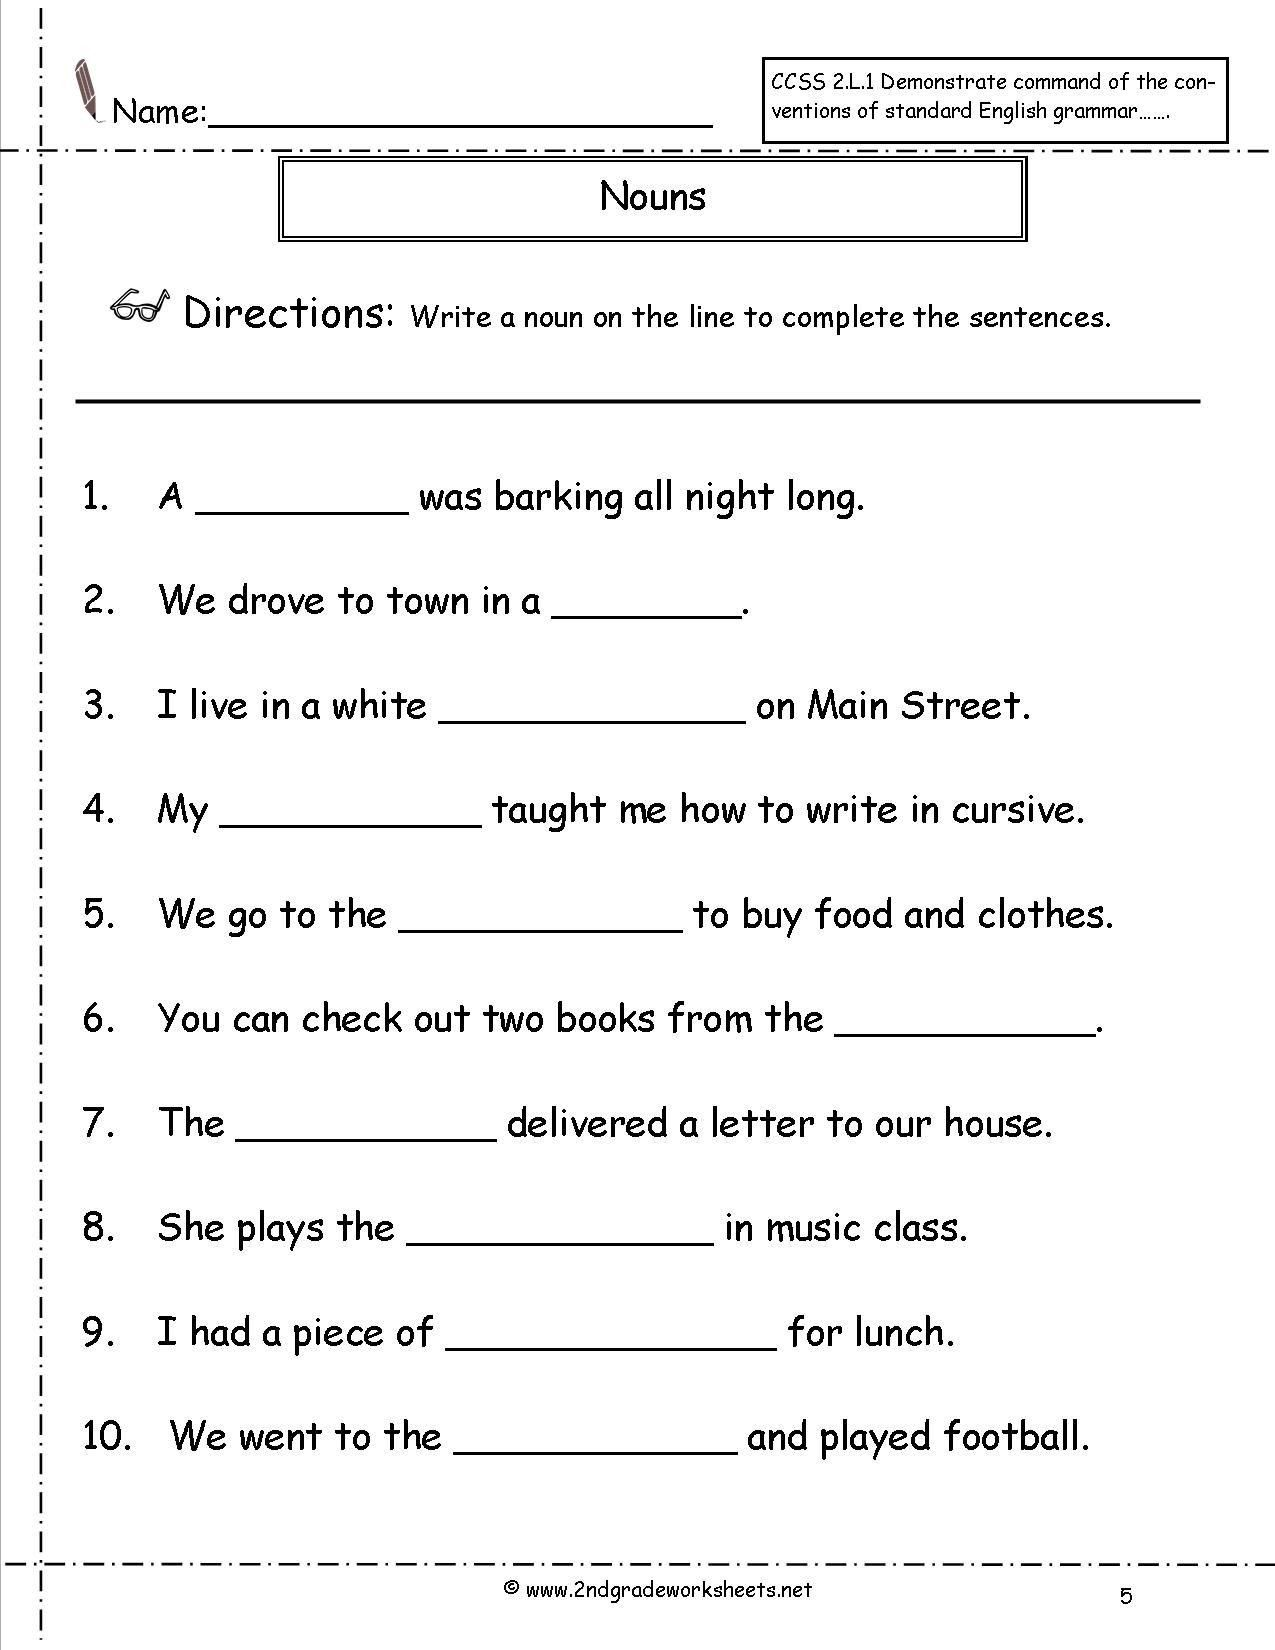 3rd Grade Grammar Worksheets Free Math Worksheet 2nd Grade Grammar  Worksheets Math Workshe…   Nouns worksheet [ 1650 x 1275 Pixel ]